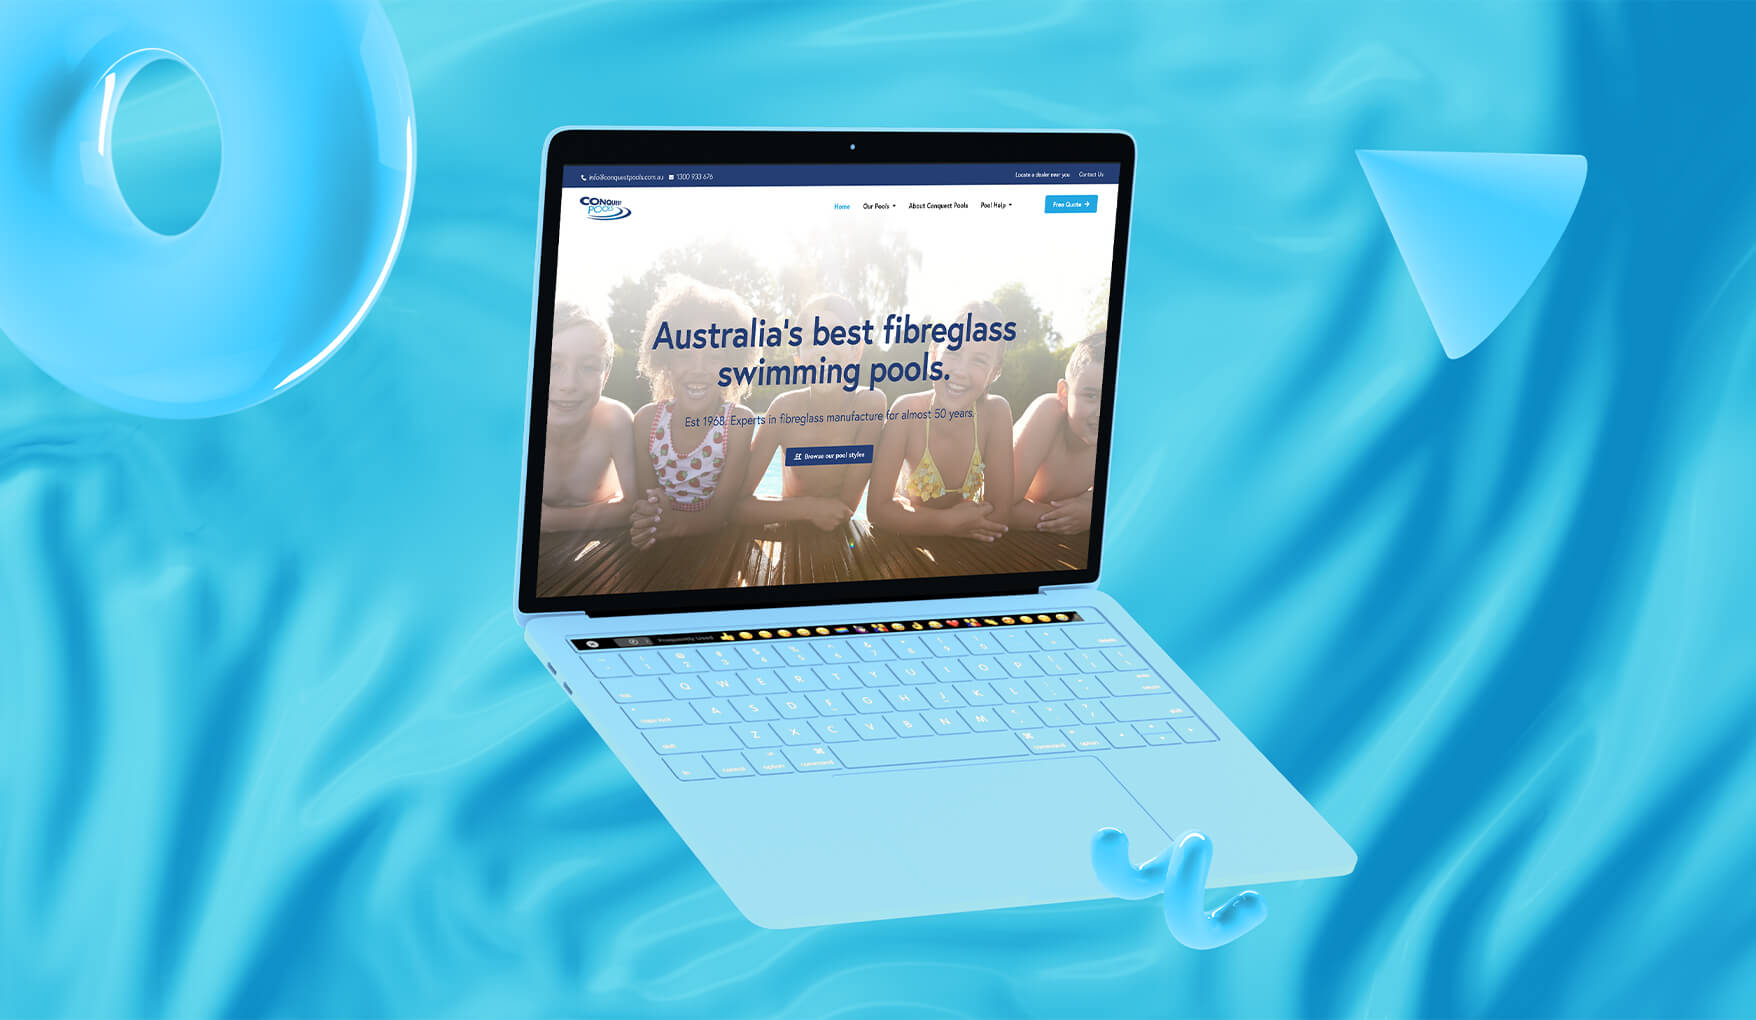 Conquest Pools website loadded on a blue Macbook with a blue wavy background